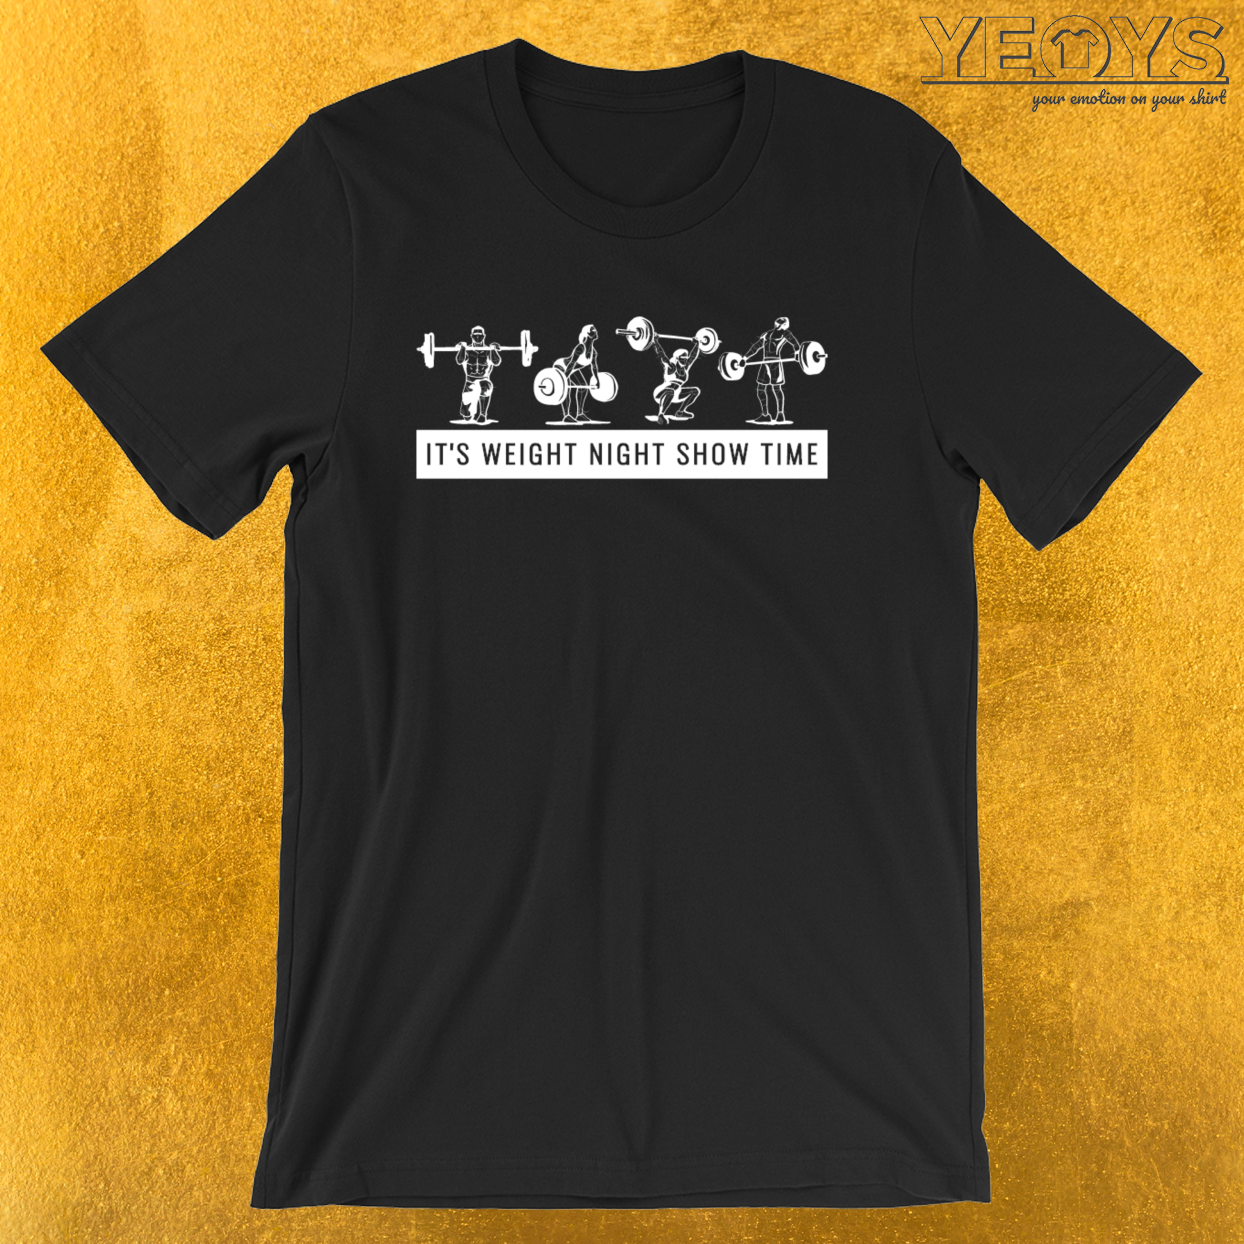 It's Weight Night Show Time – Weightlifting Tee